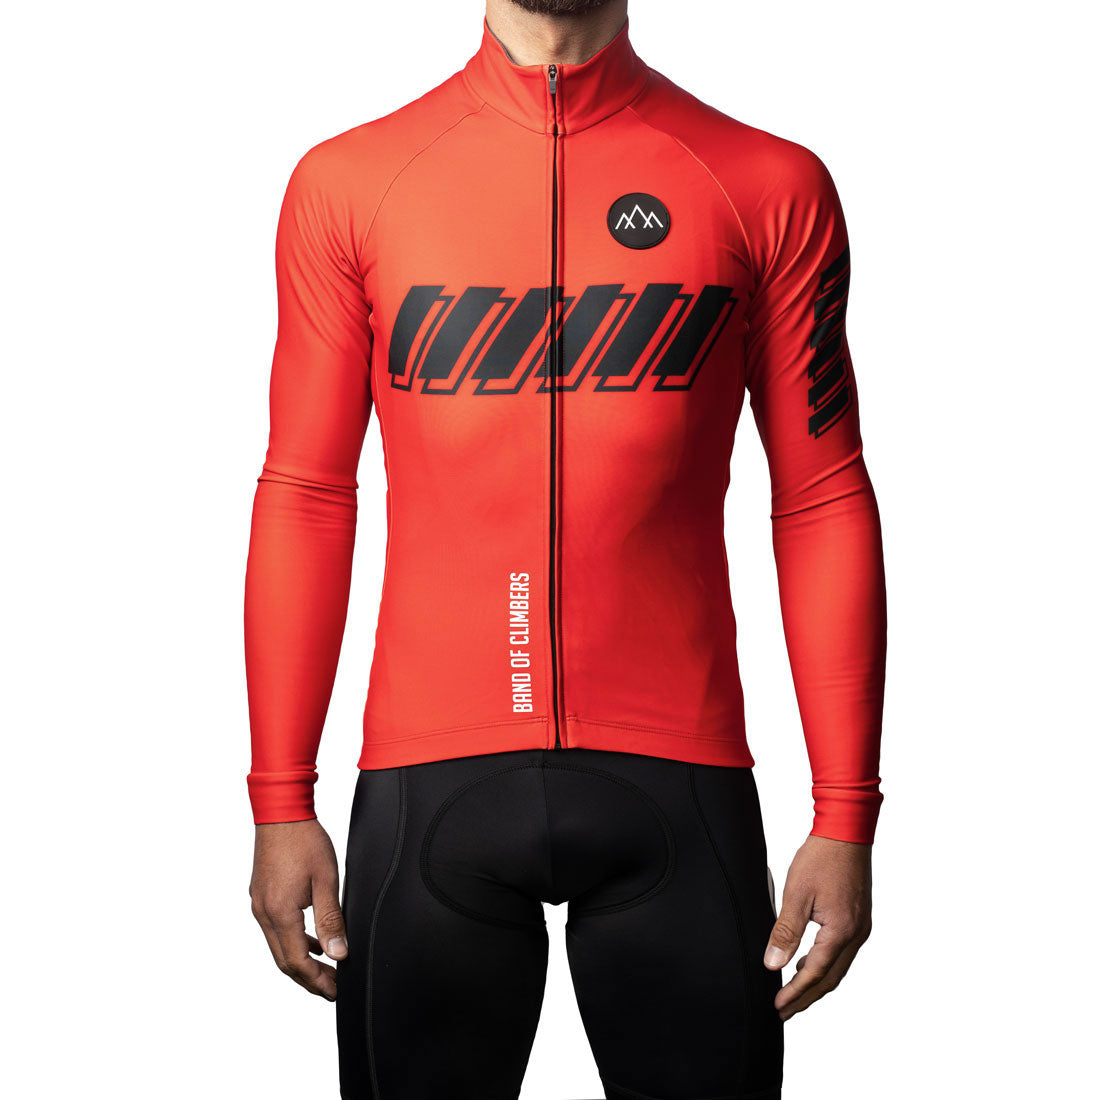 ThermoAscent Long Sleeve Jersey - Red